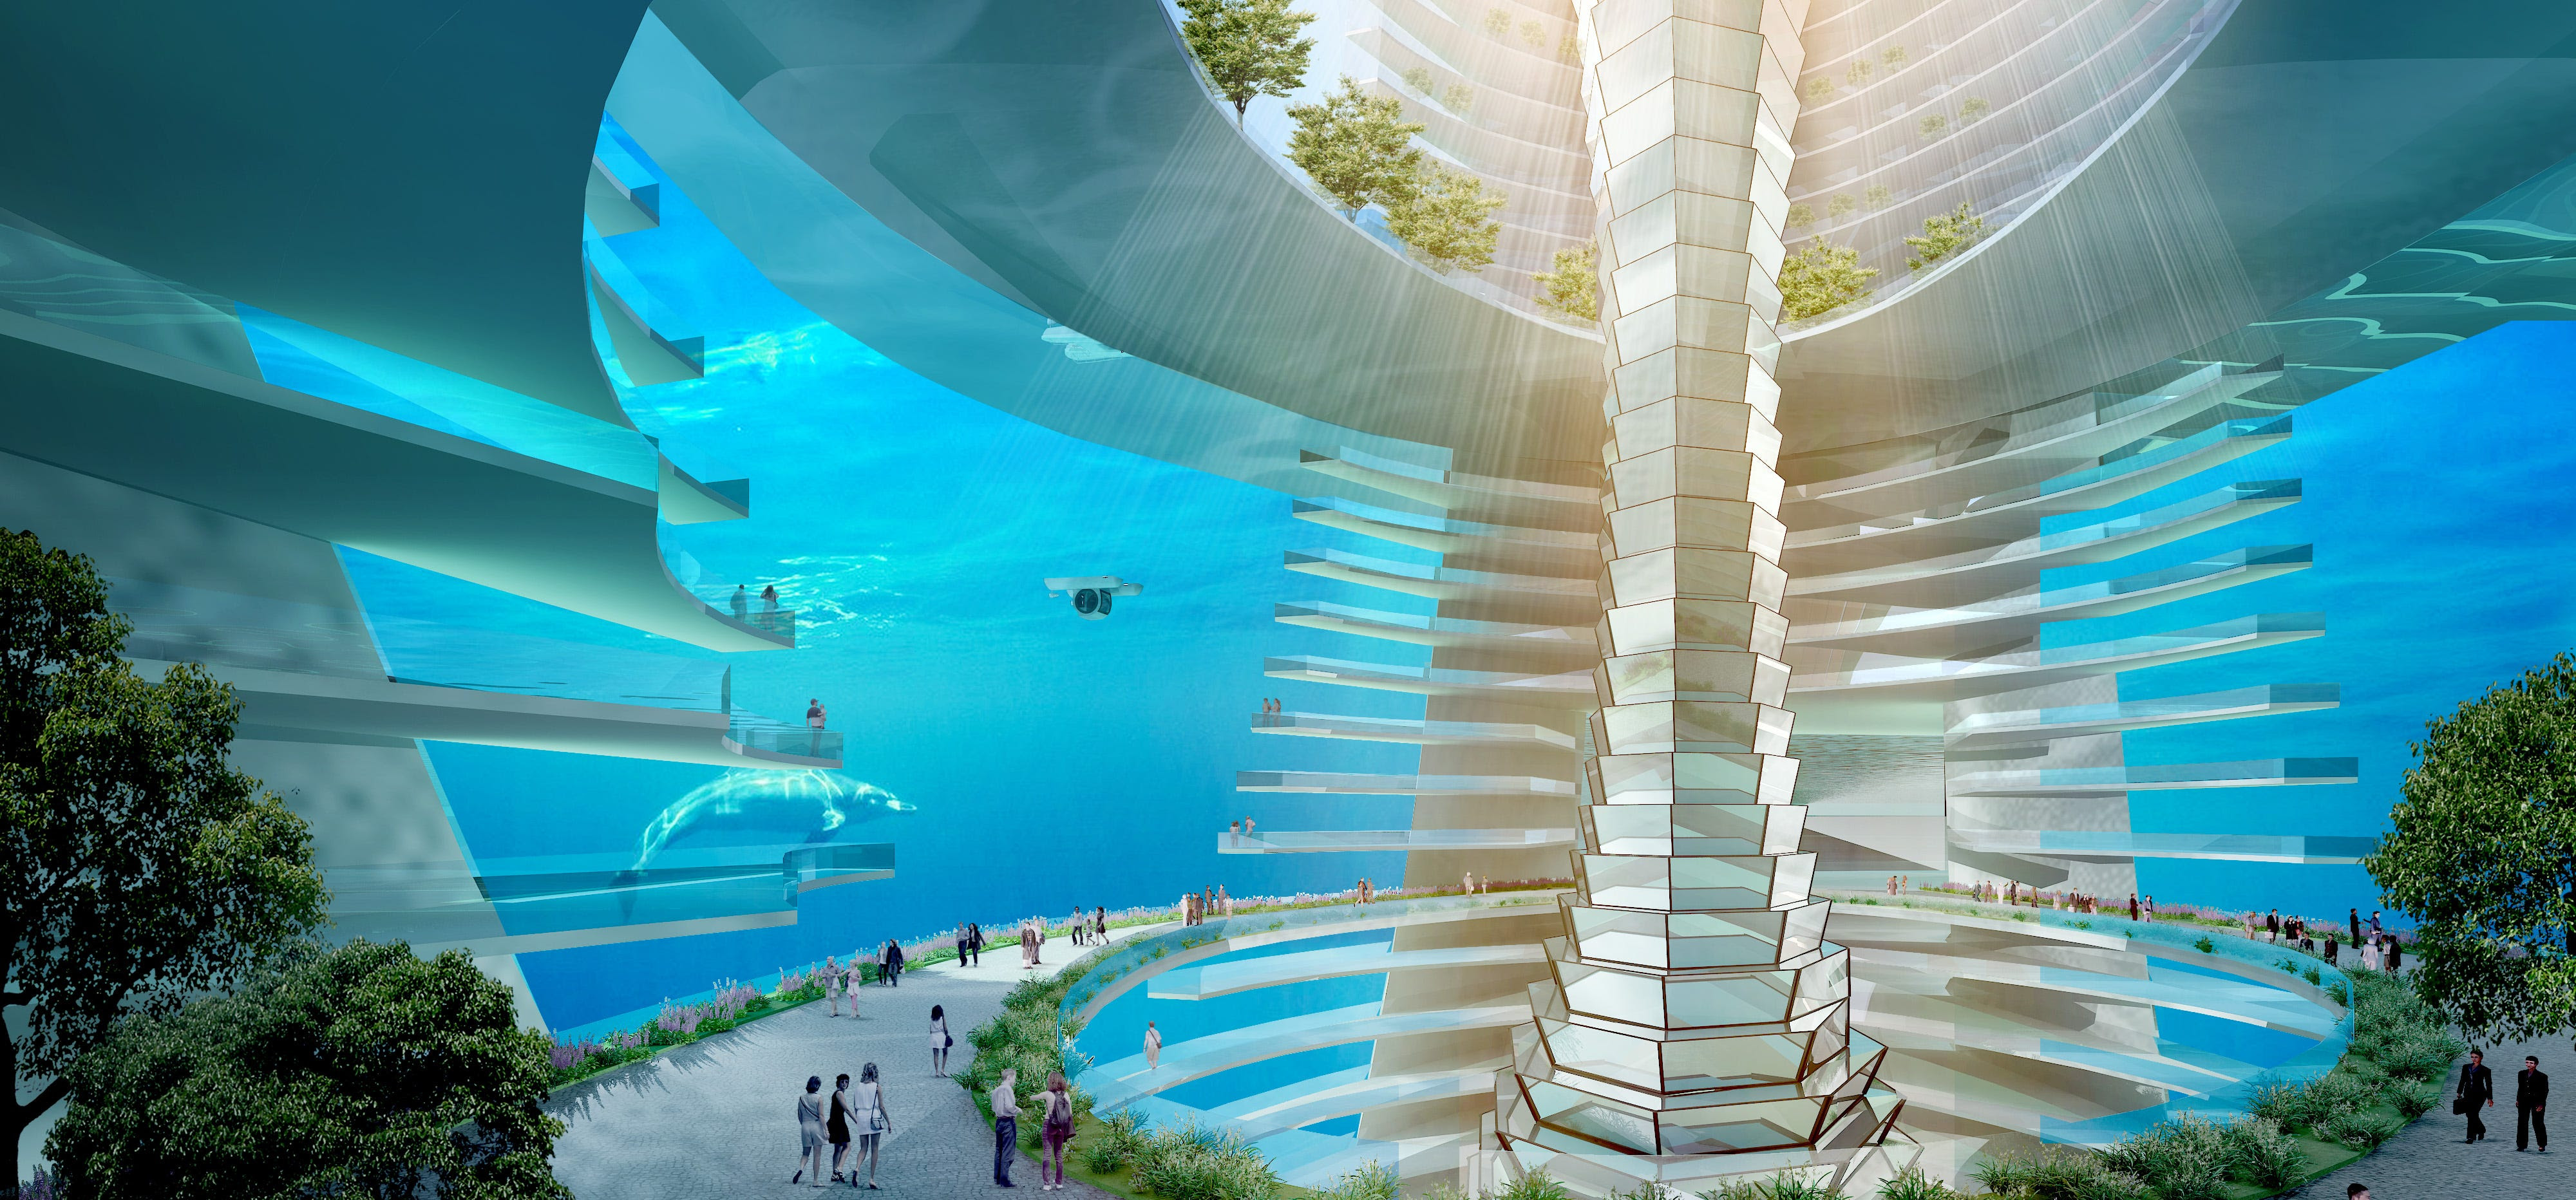 This iFuturistici Floating iCityi Could Become A Reality In